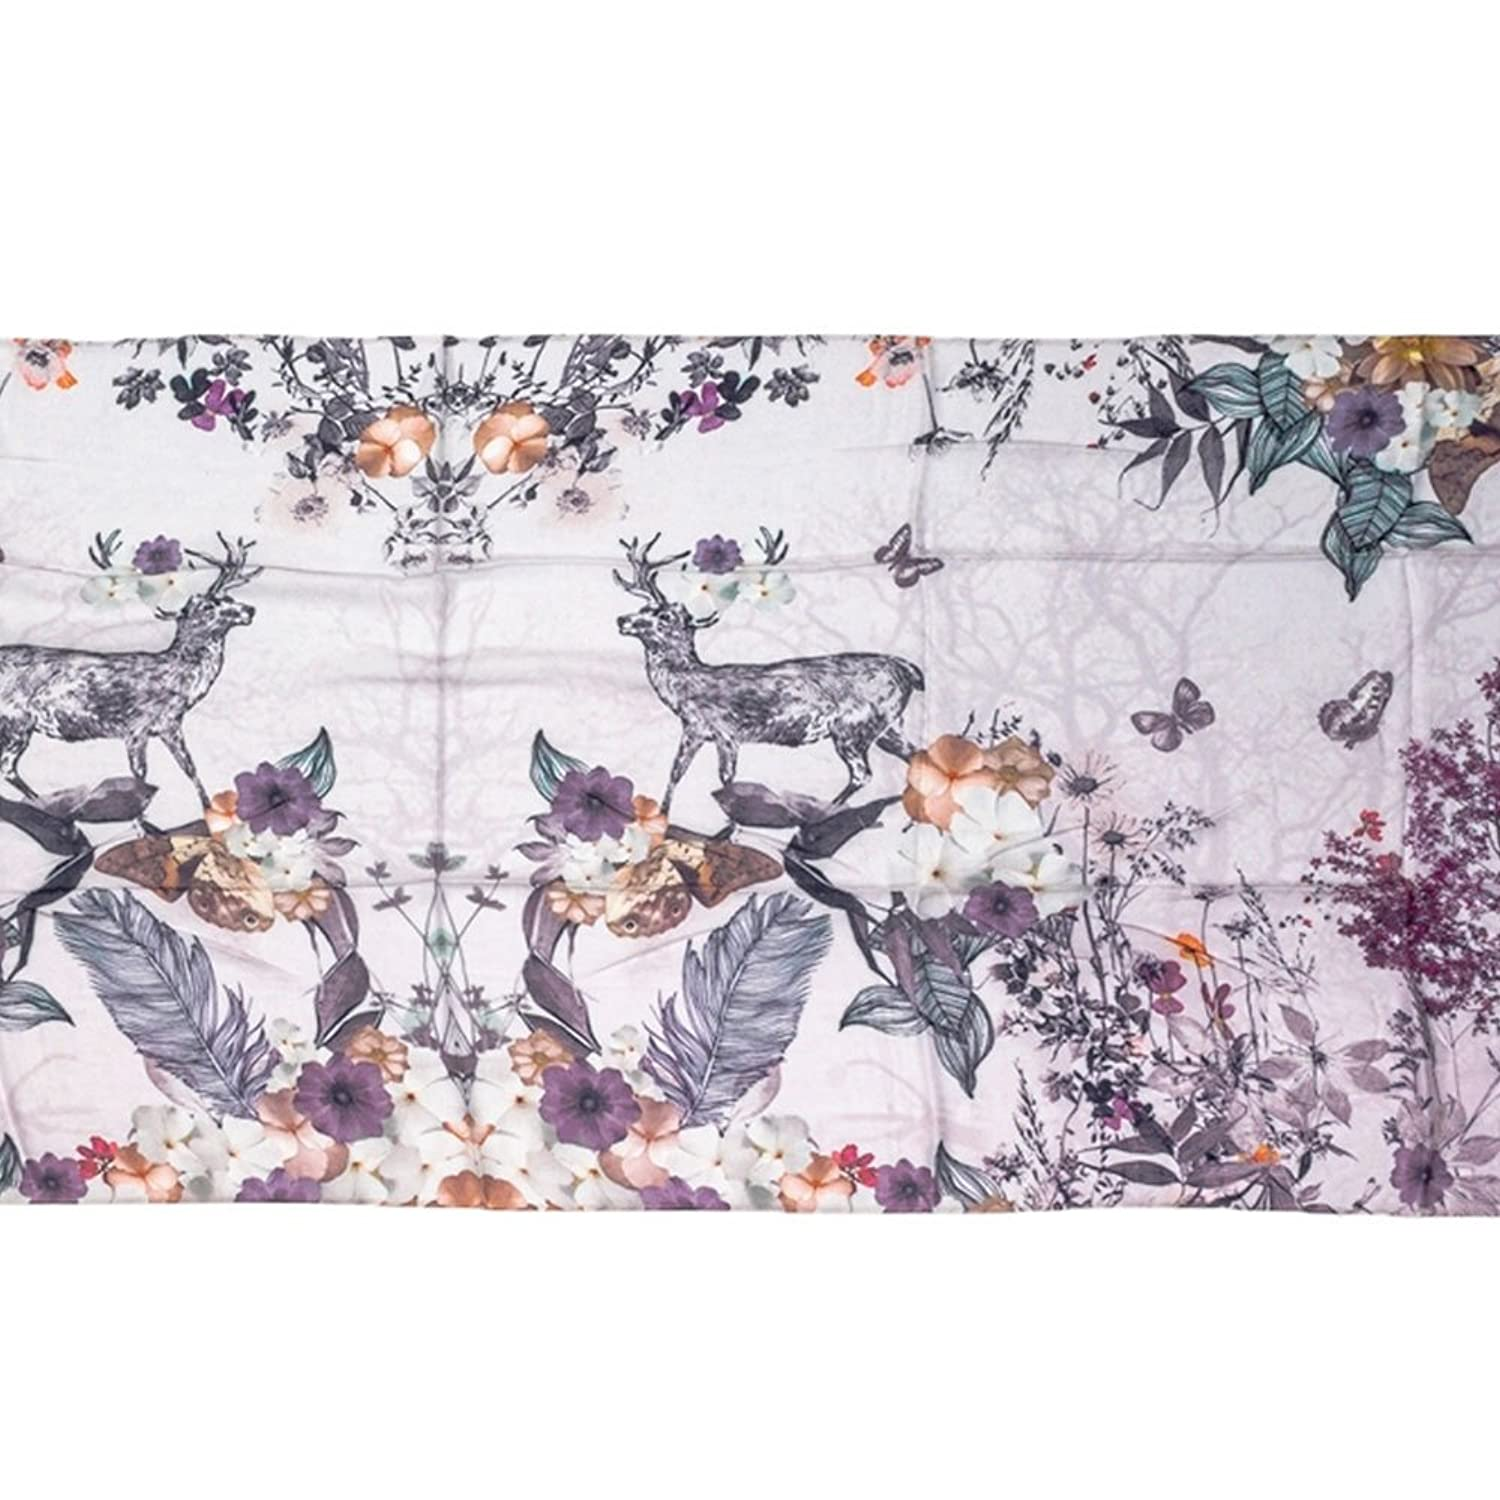 Front Row Society - Wistmans Wood Women's Scarf